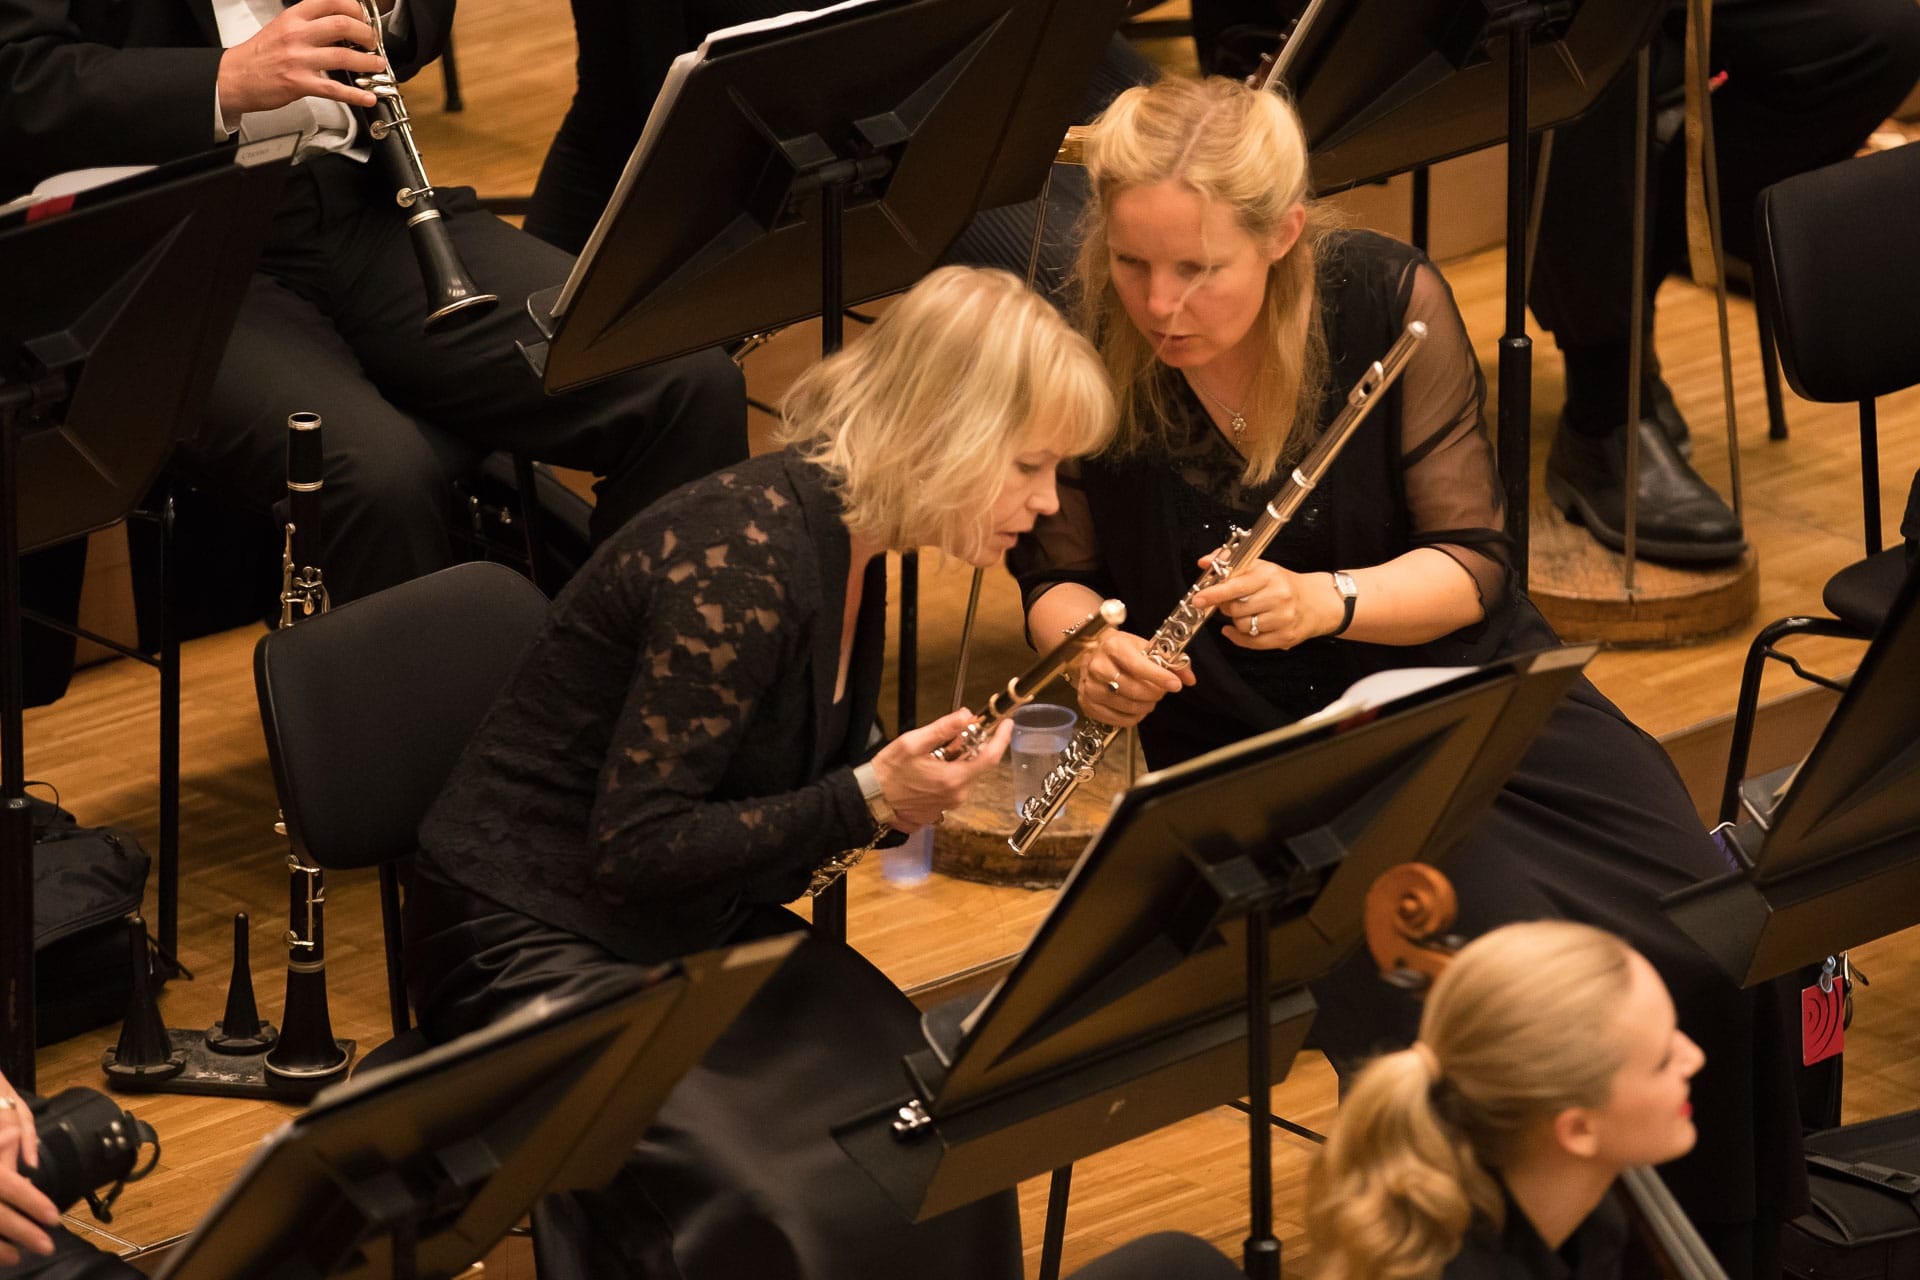 Jennifer Steele and Lorna McGhee 8/31/17 PSO 2017 European Tour Concert at Graffenegg Manfred Honeck, conductor Matthias Goerne, baritone Dvorak, Rusalka Fantasy Mahler, Seven Songs from Des Knaben Wunderhorn Intermission Beethoven, Symphony No. 7 in A major © Todd Rosenberg 2017